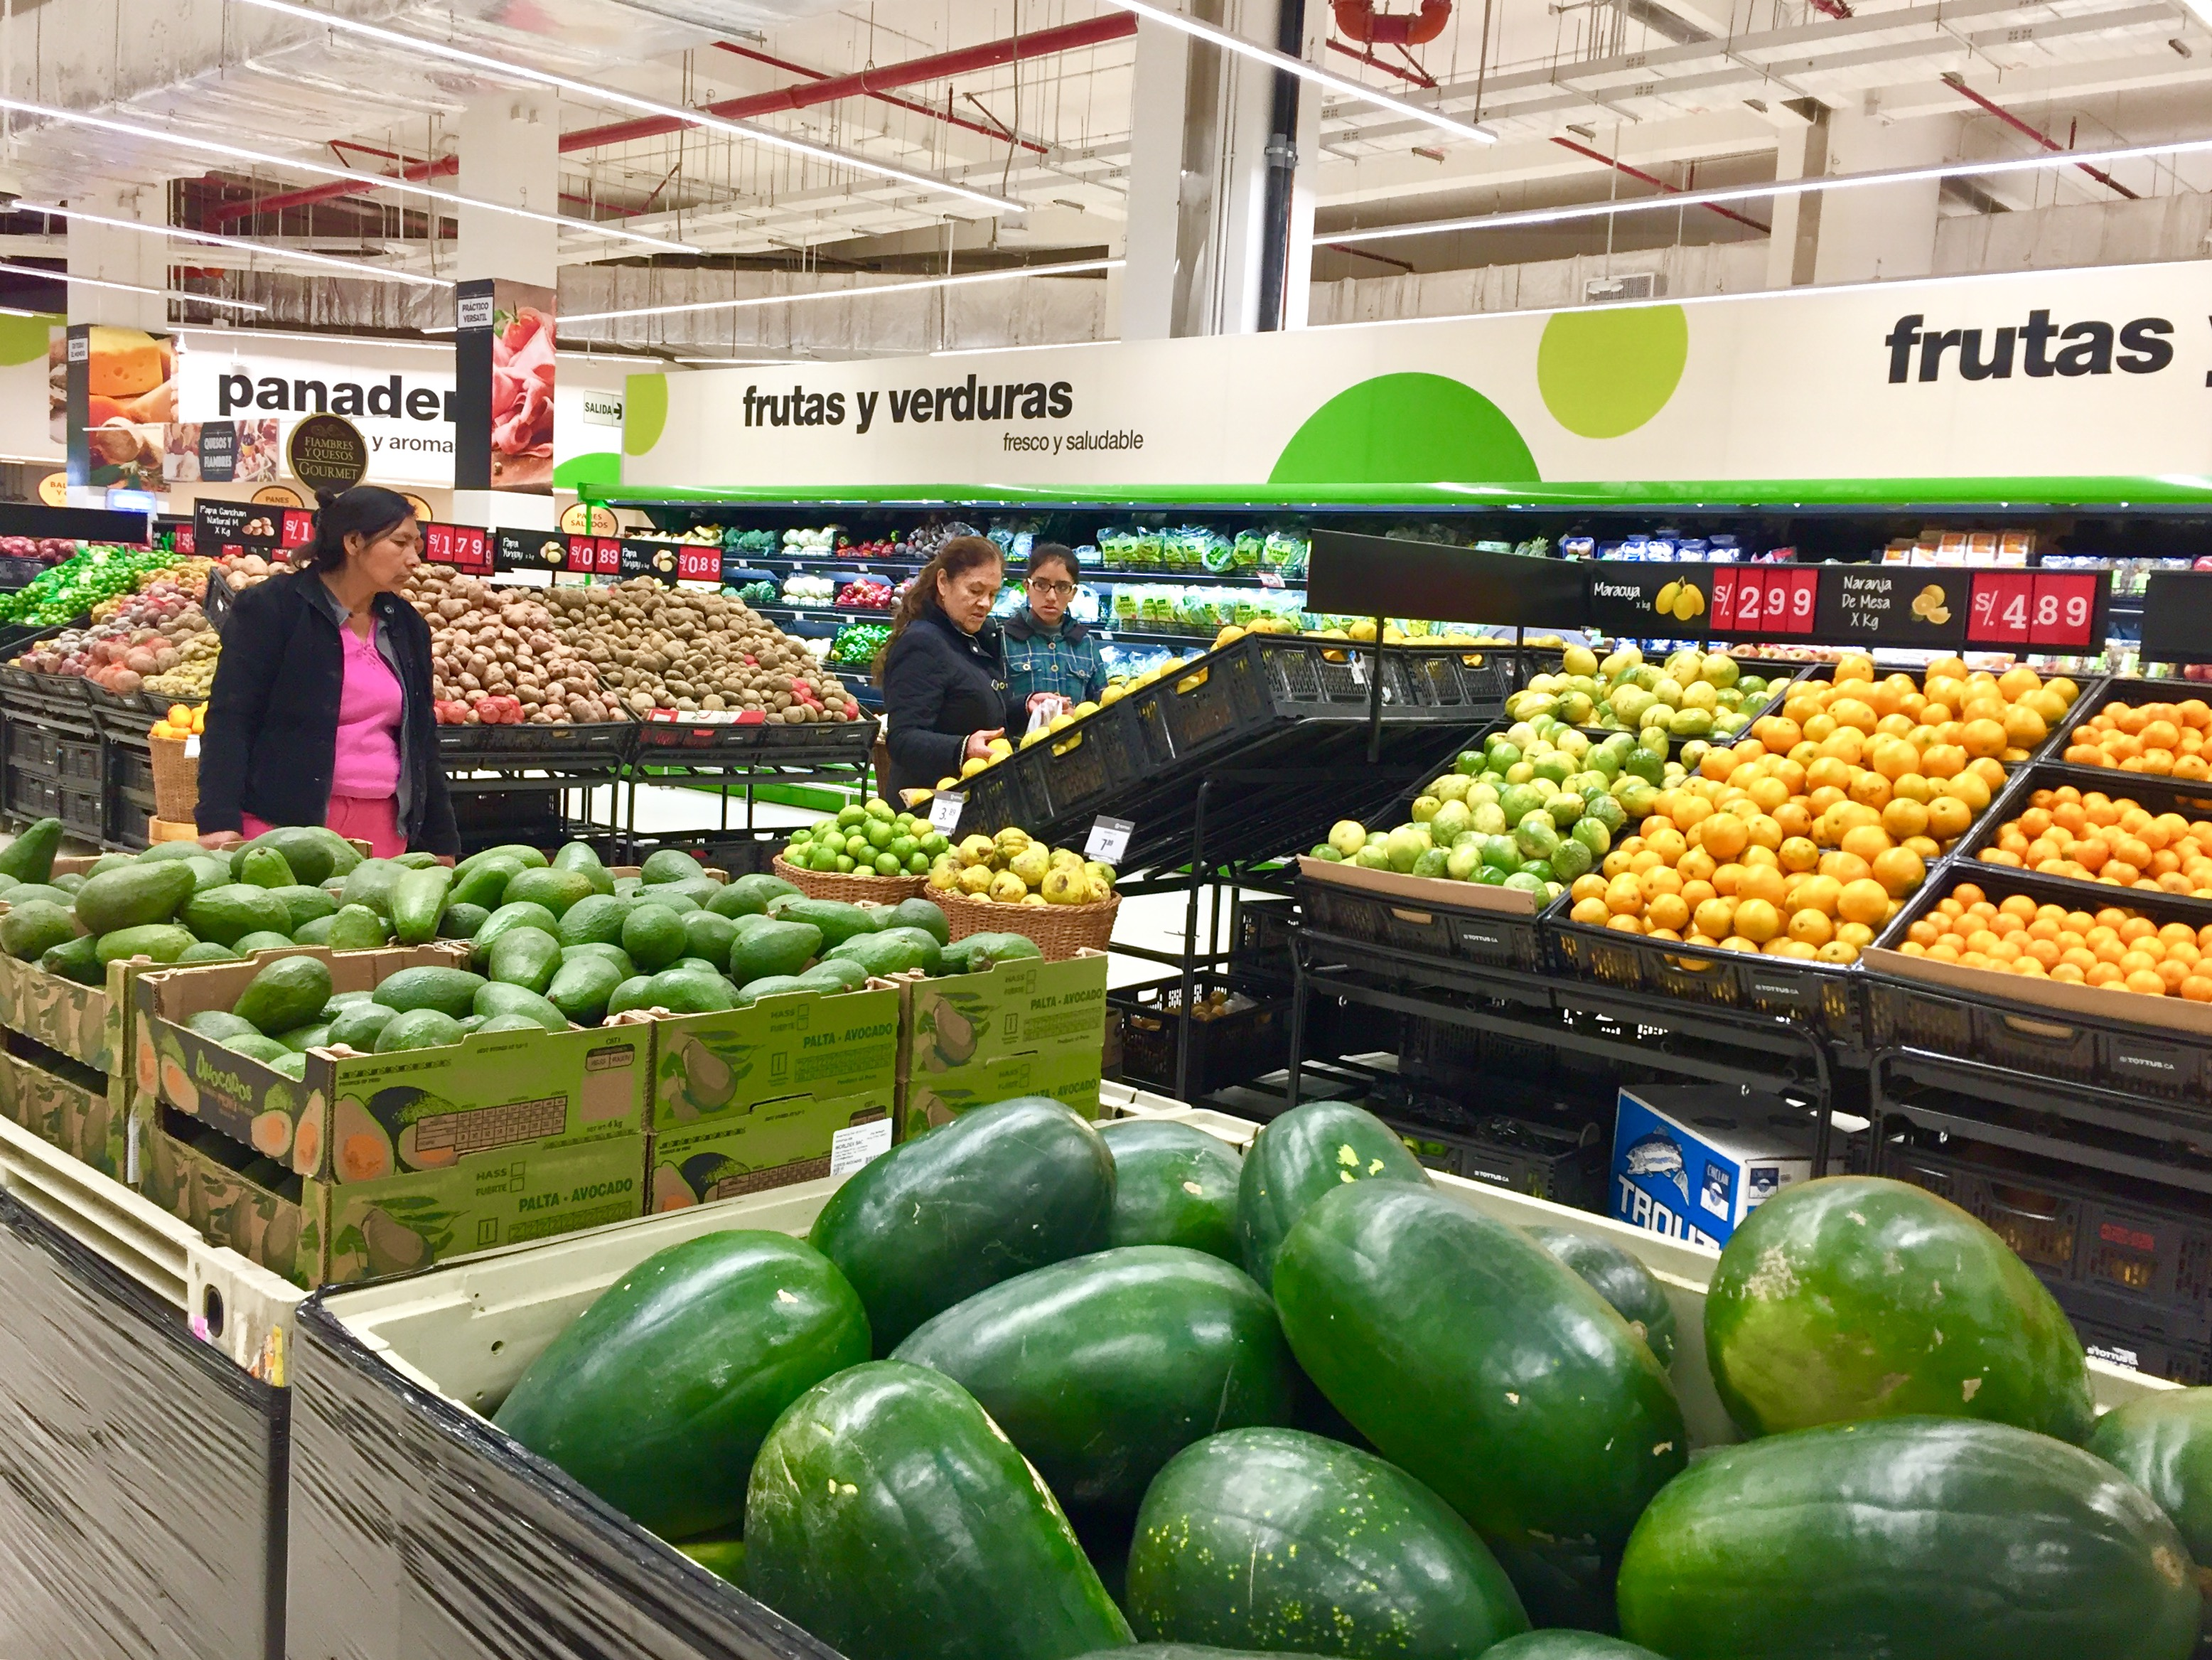 Fruit and vegetables section